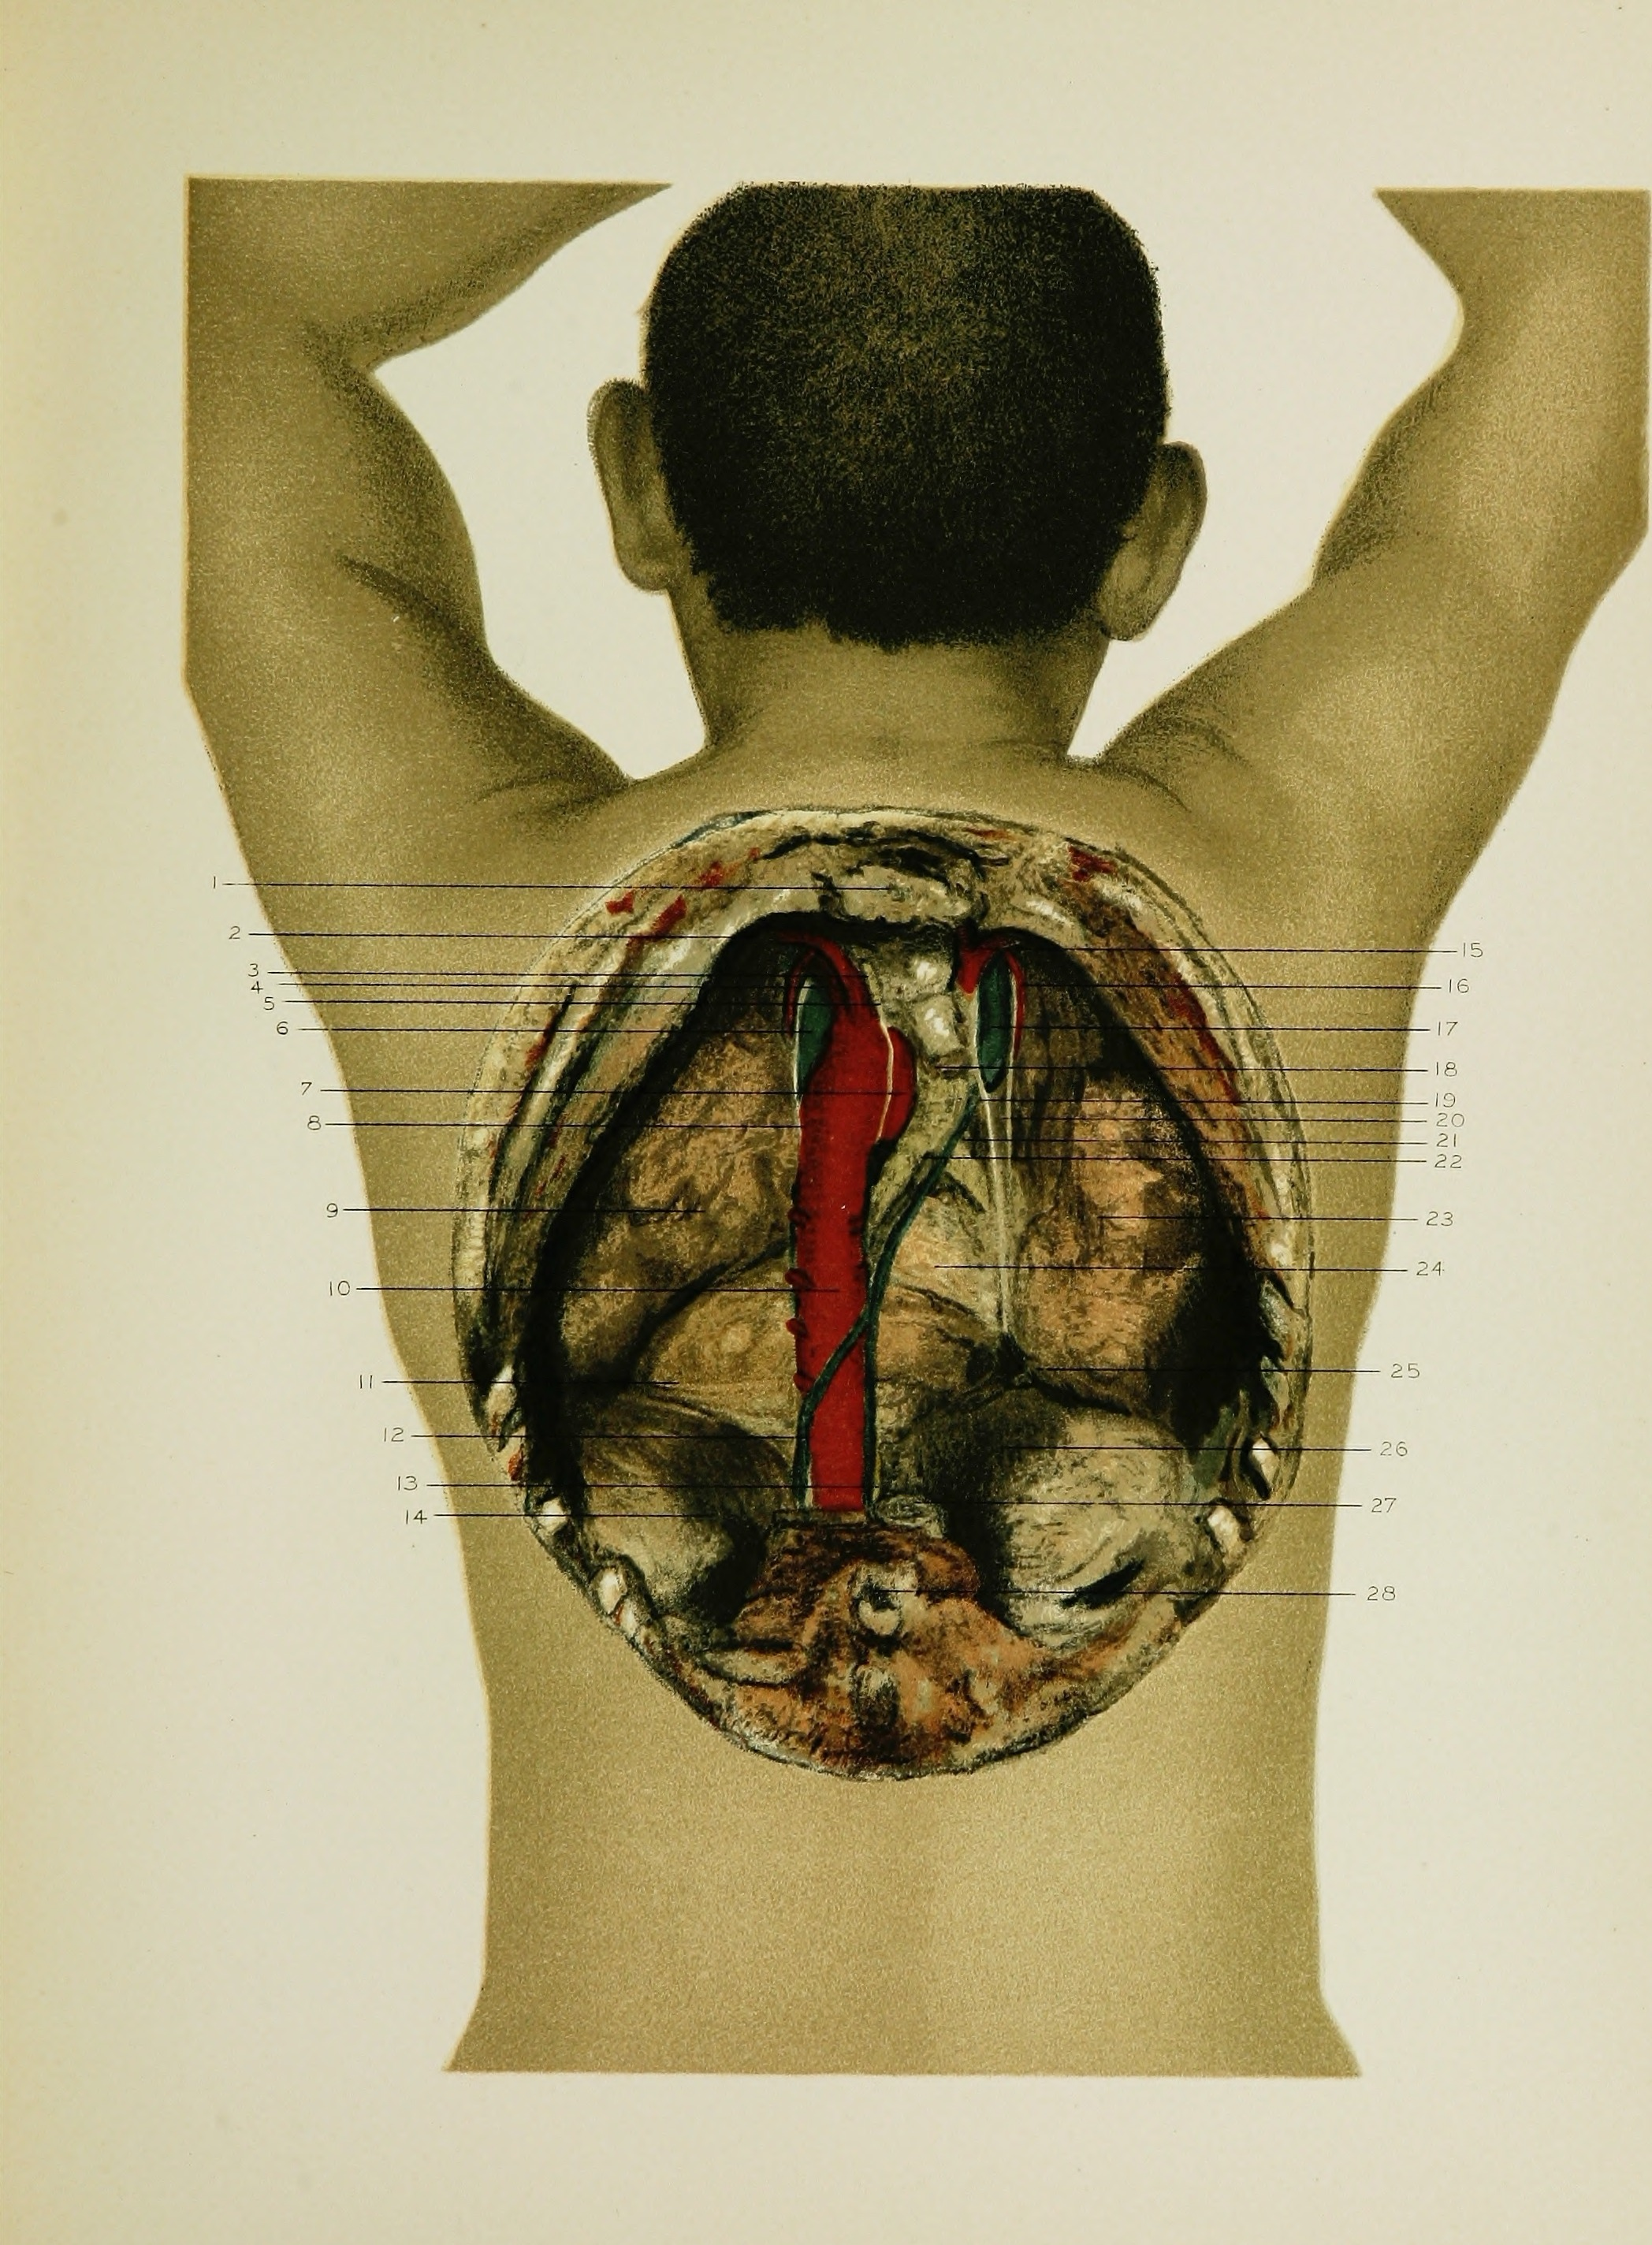 Fileregional Anatomy In Its Relation To Medicine And Surgery 1891